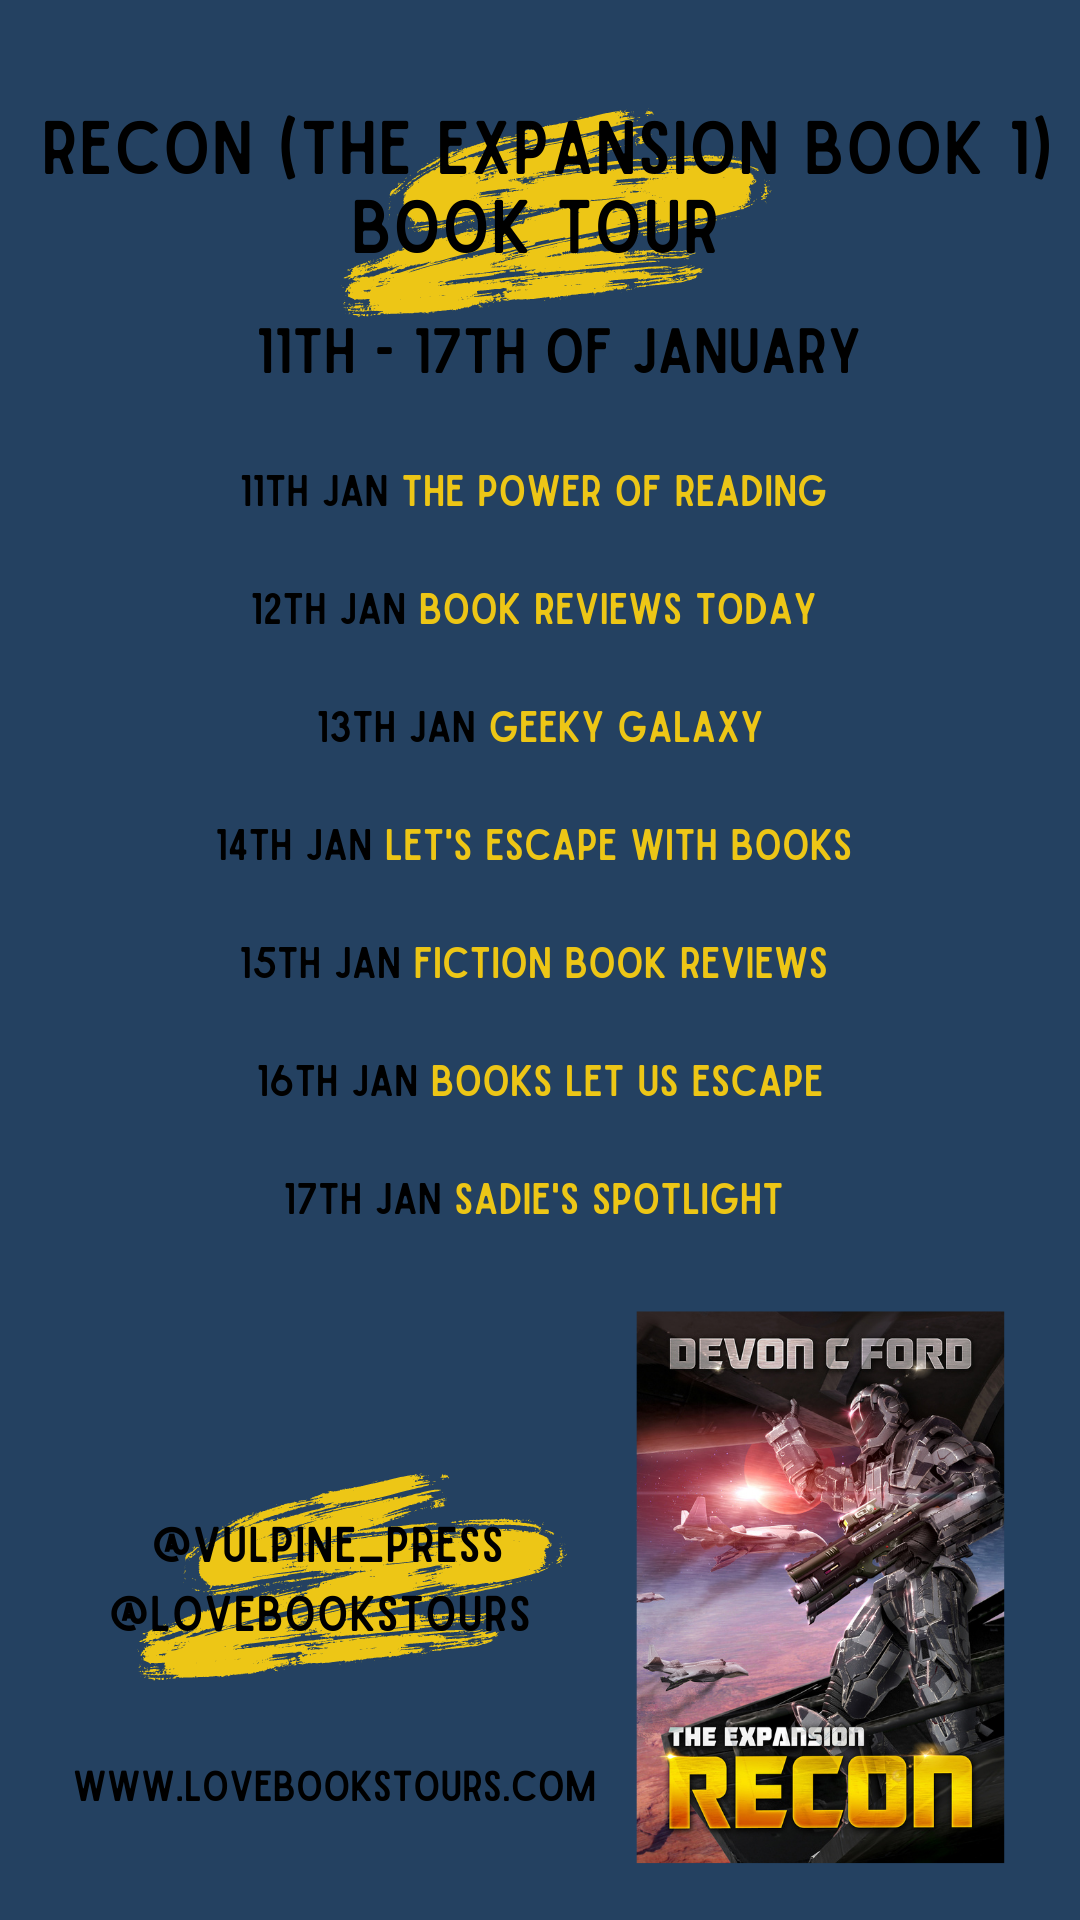 Recon (The Expansion Book 1) - Schedule